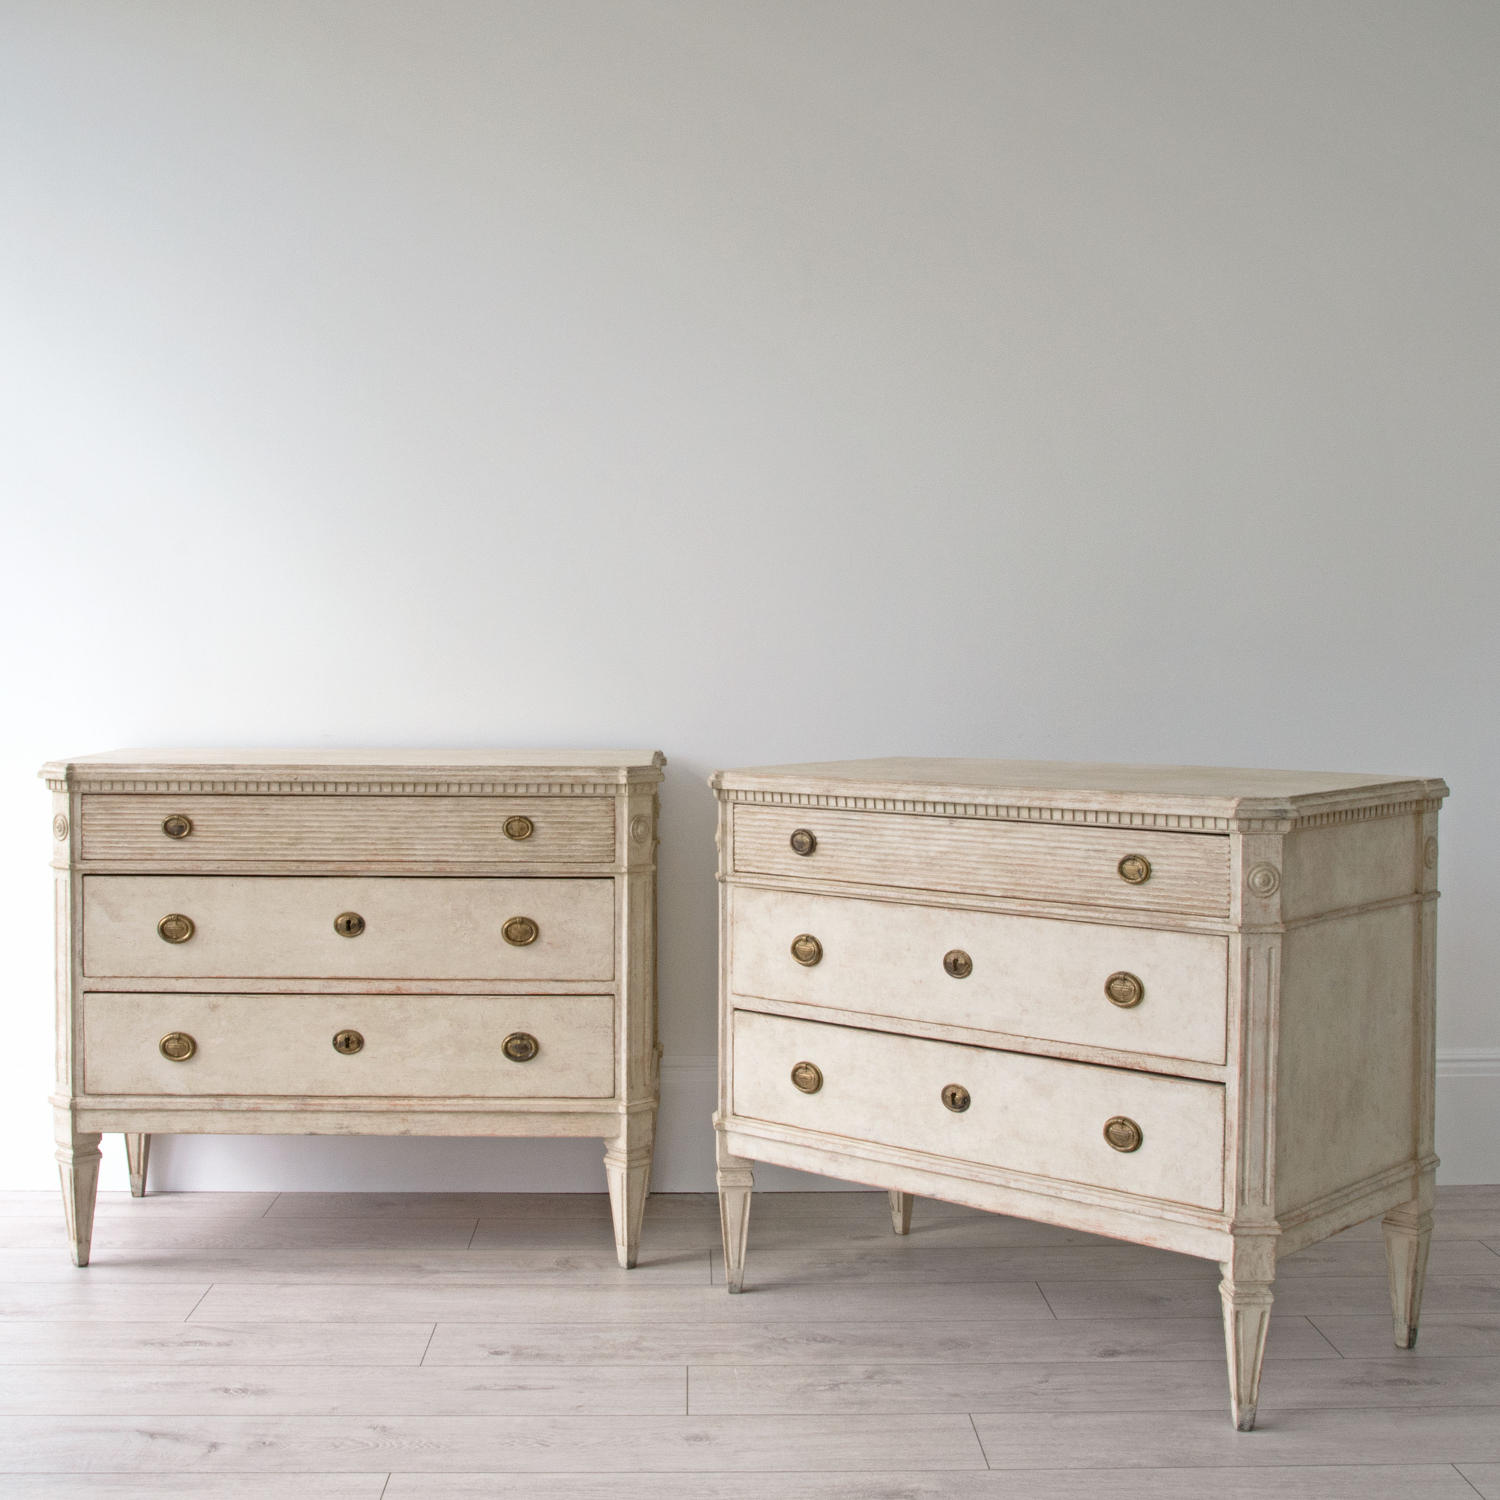 BEAUTIFUL PAIR OF SWEDISH GUSTAVIAN STYLE CHESTS